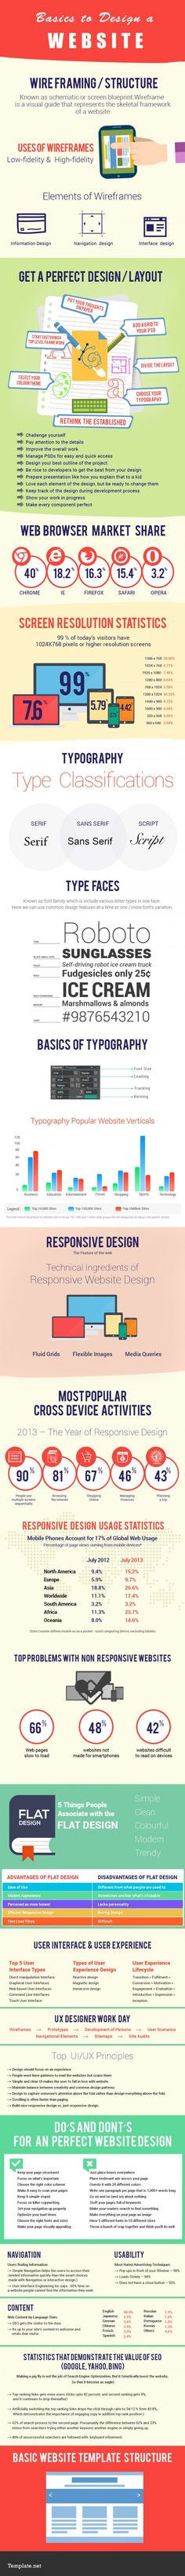 Basics to Design a Website - a breakdown of the steps you should take when starting to design a new website.